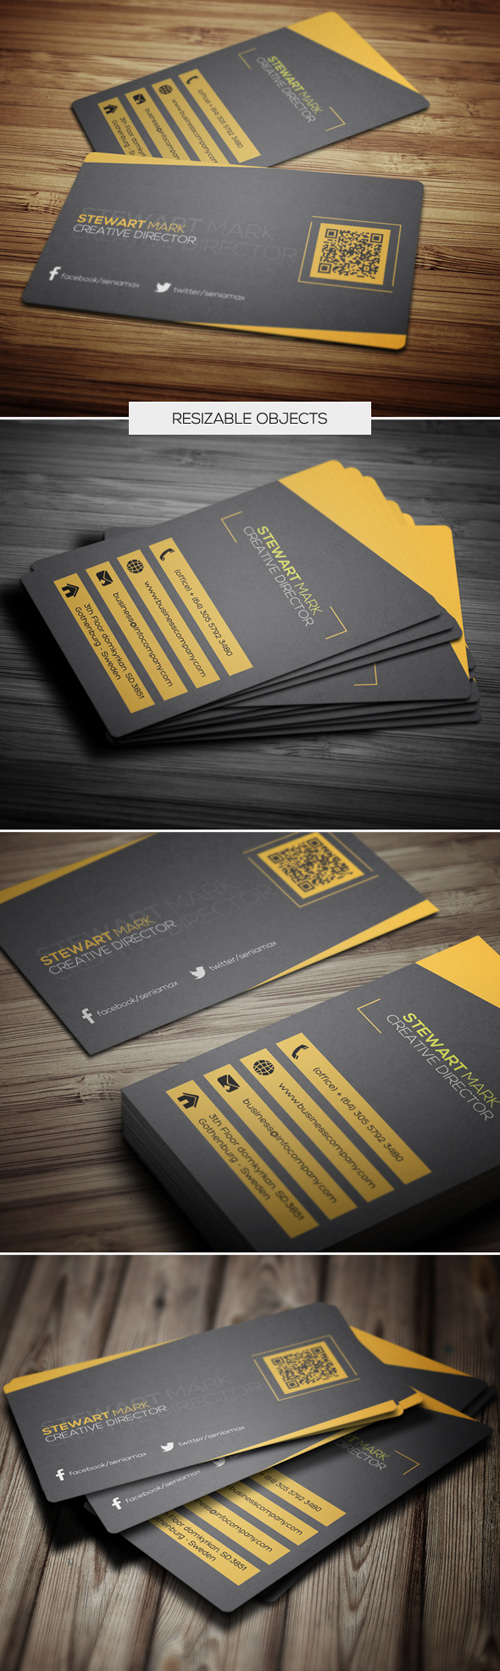 Creative Director Business Cards Design-5